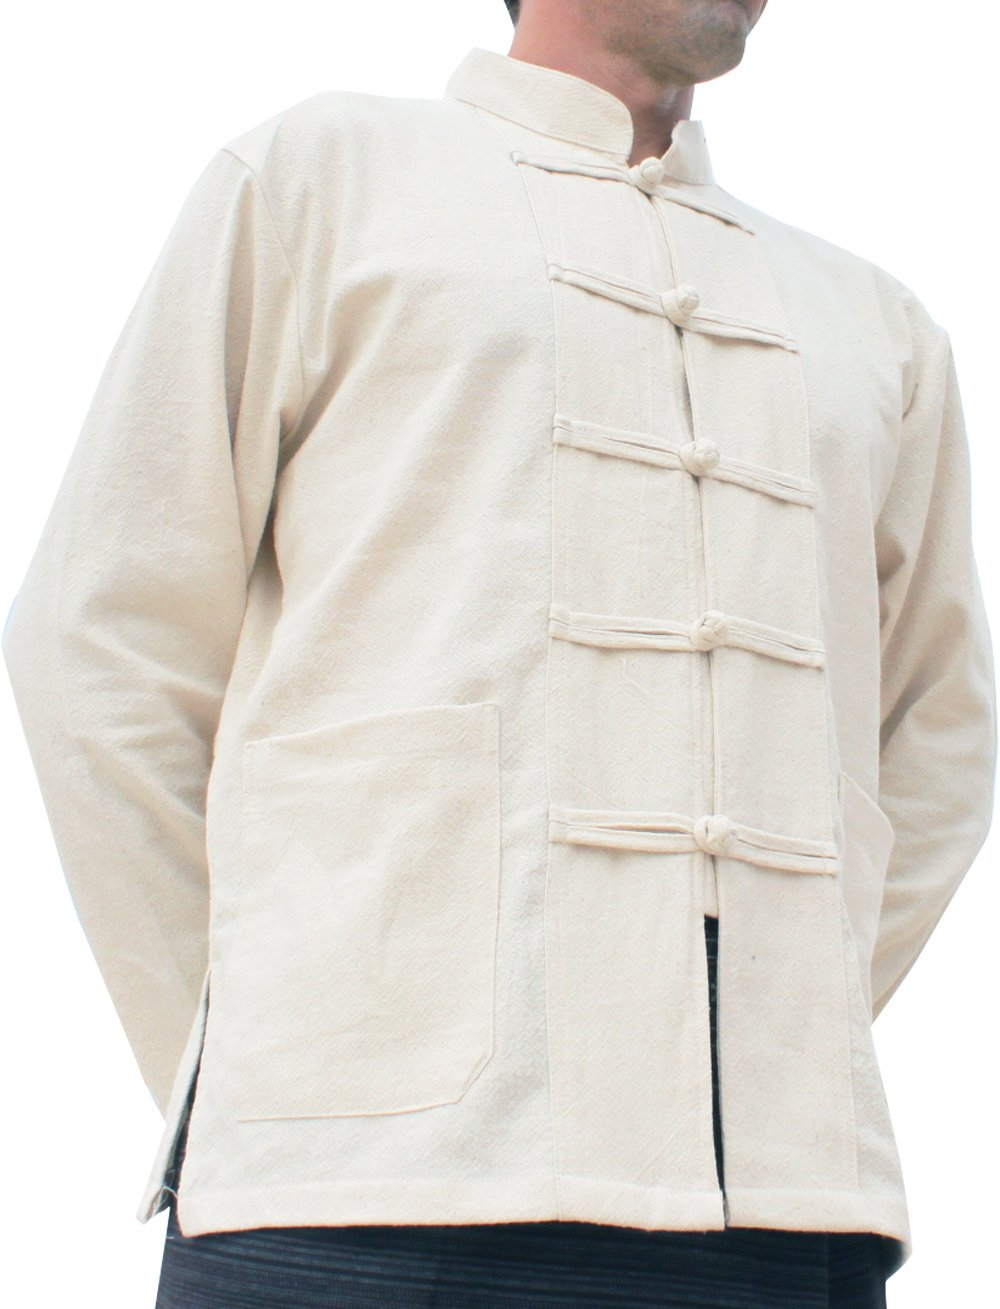 RaanPahMuang Thick Muang Cotton Frog Button Chinese Jacket Shirt Plus, XXX-Large, Natural Cream